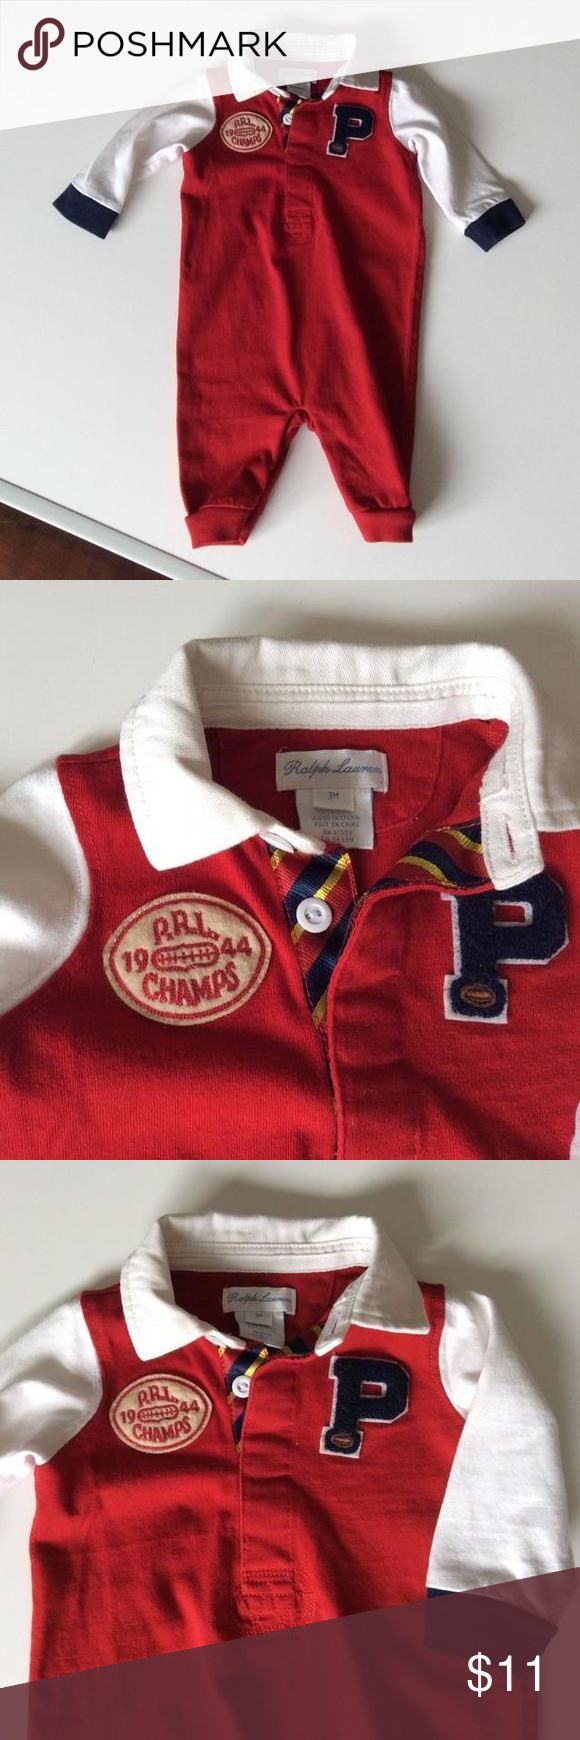 Ralph Lauren rugby outfit, size 3 mos Classic in every way, this bright and well made rugby onesie is perfect for fall and winter!  Size 3 mos Ralph Lauren Shirts & Tops